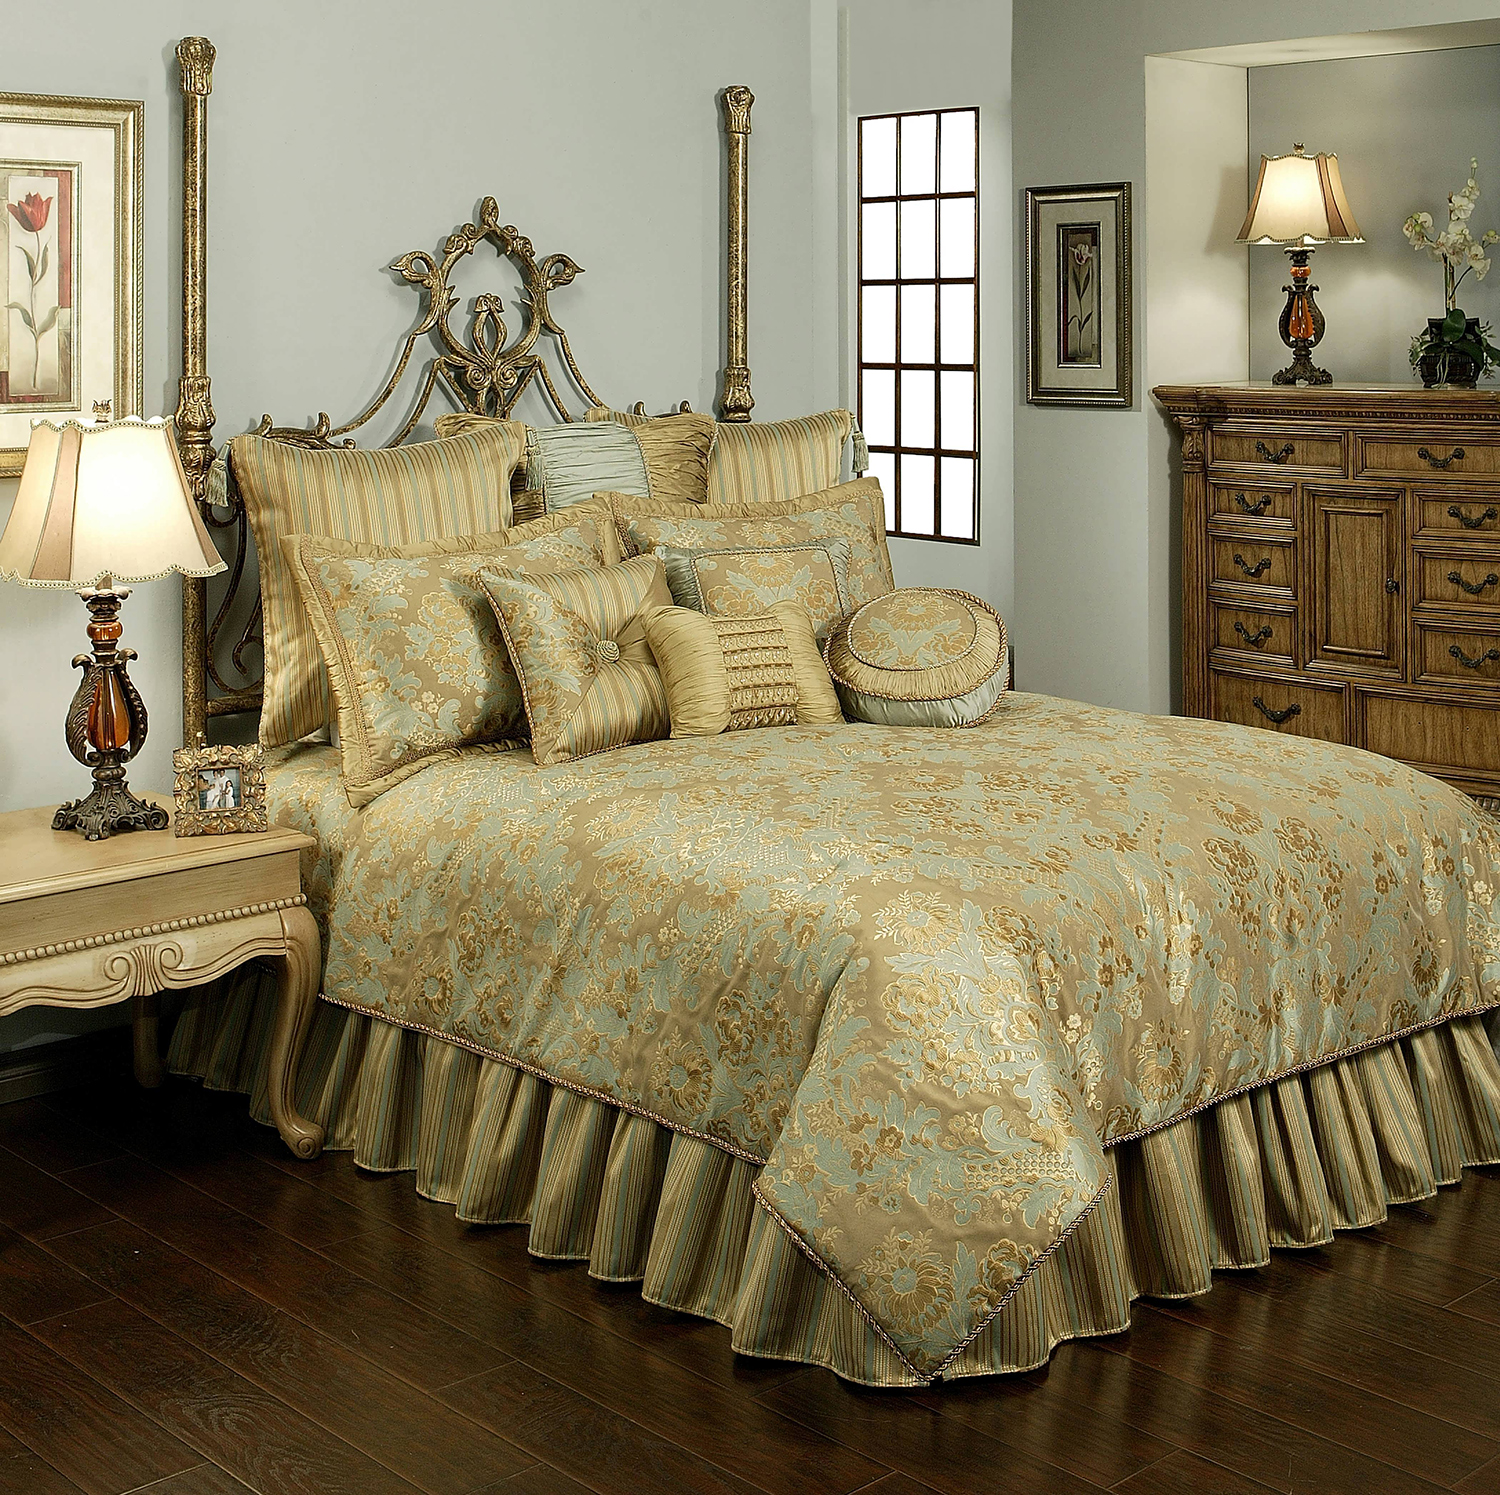 Mondavi By Austin Horn Luxury Bedding Beddingsuperstore Com